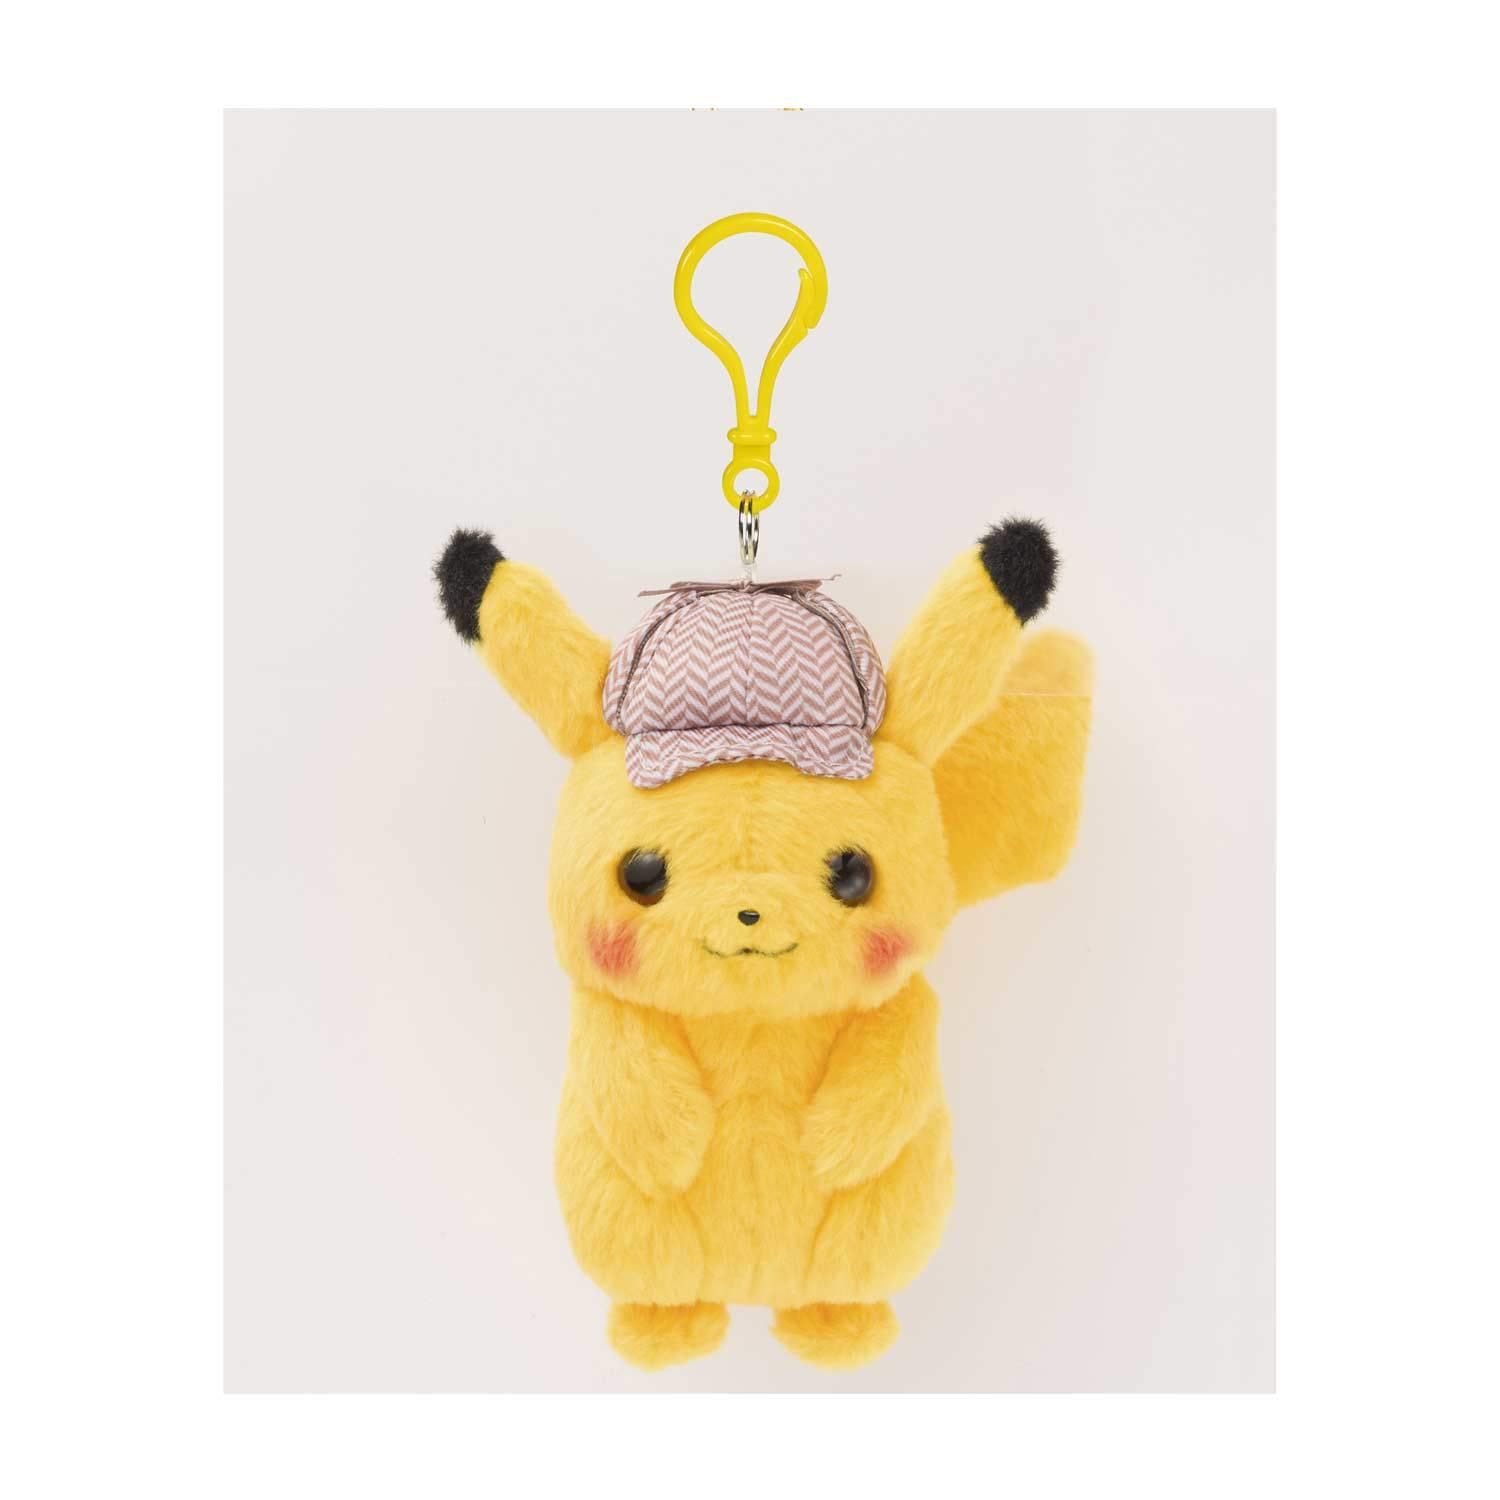 POKÉMON Detective Pikachu Plush Key Chain by Pokemon